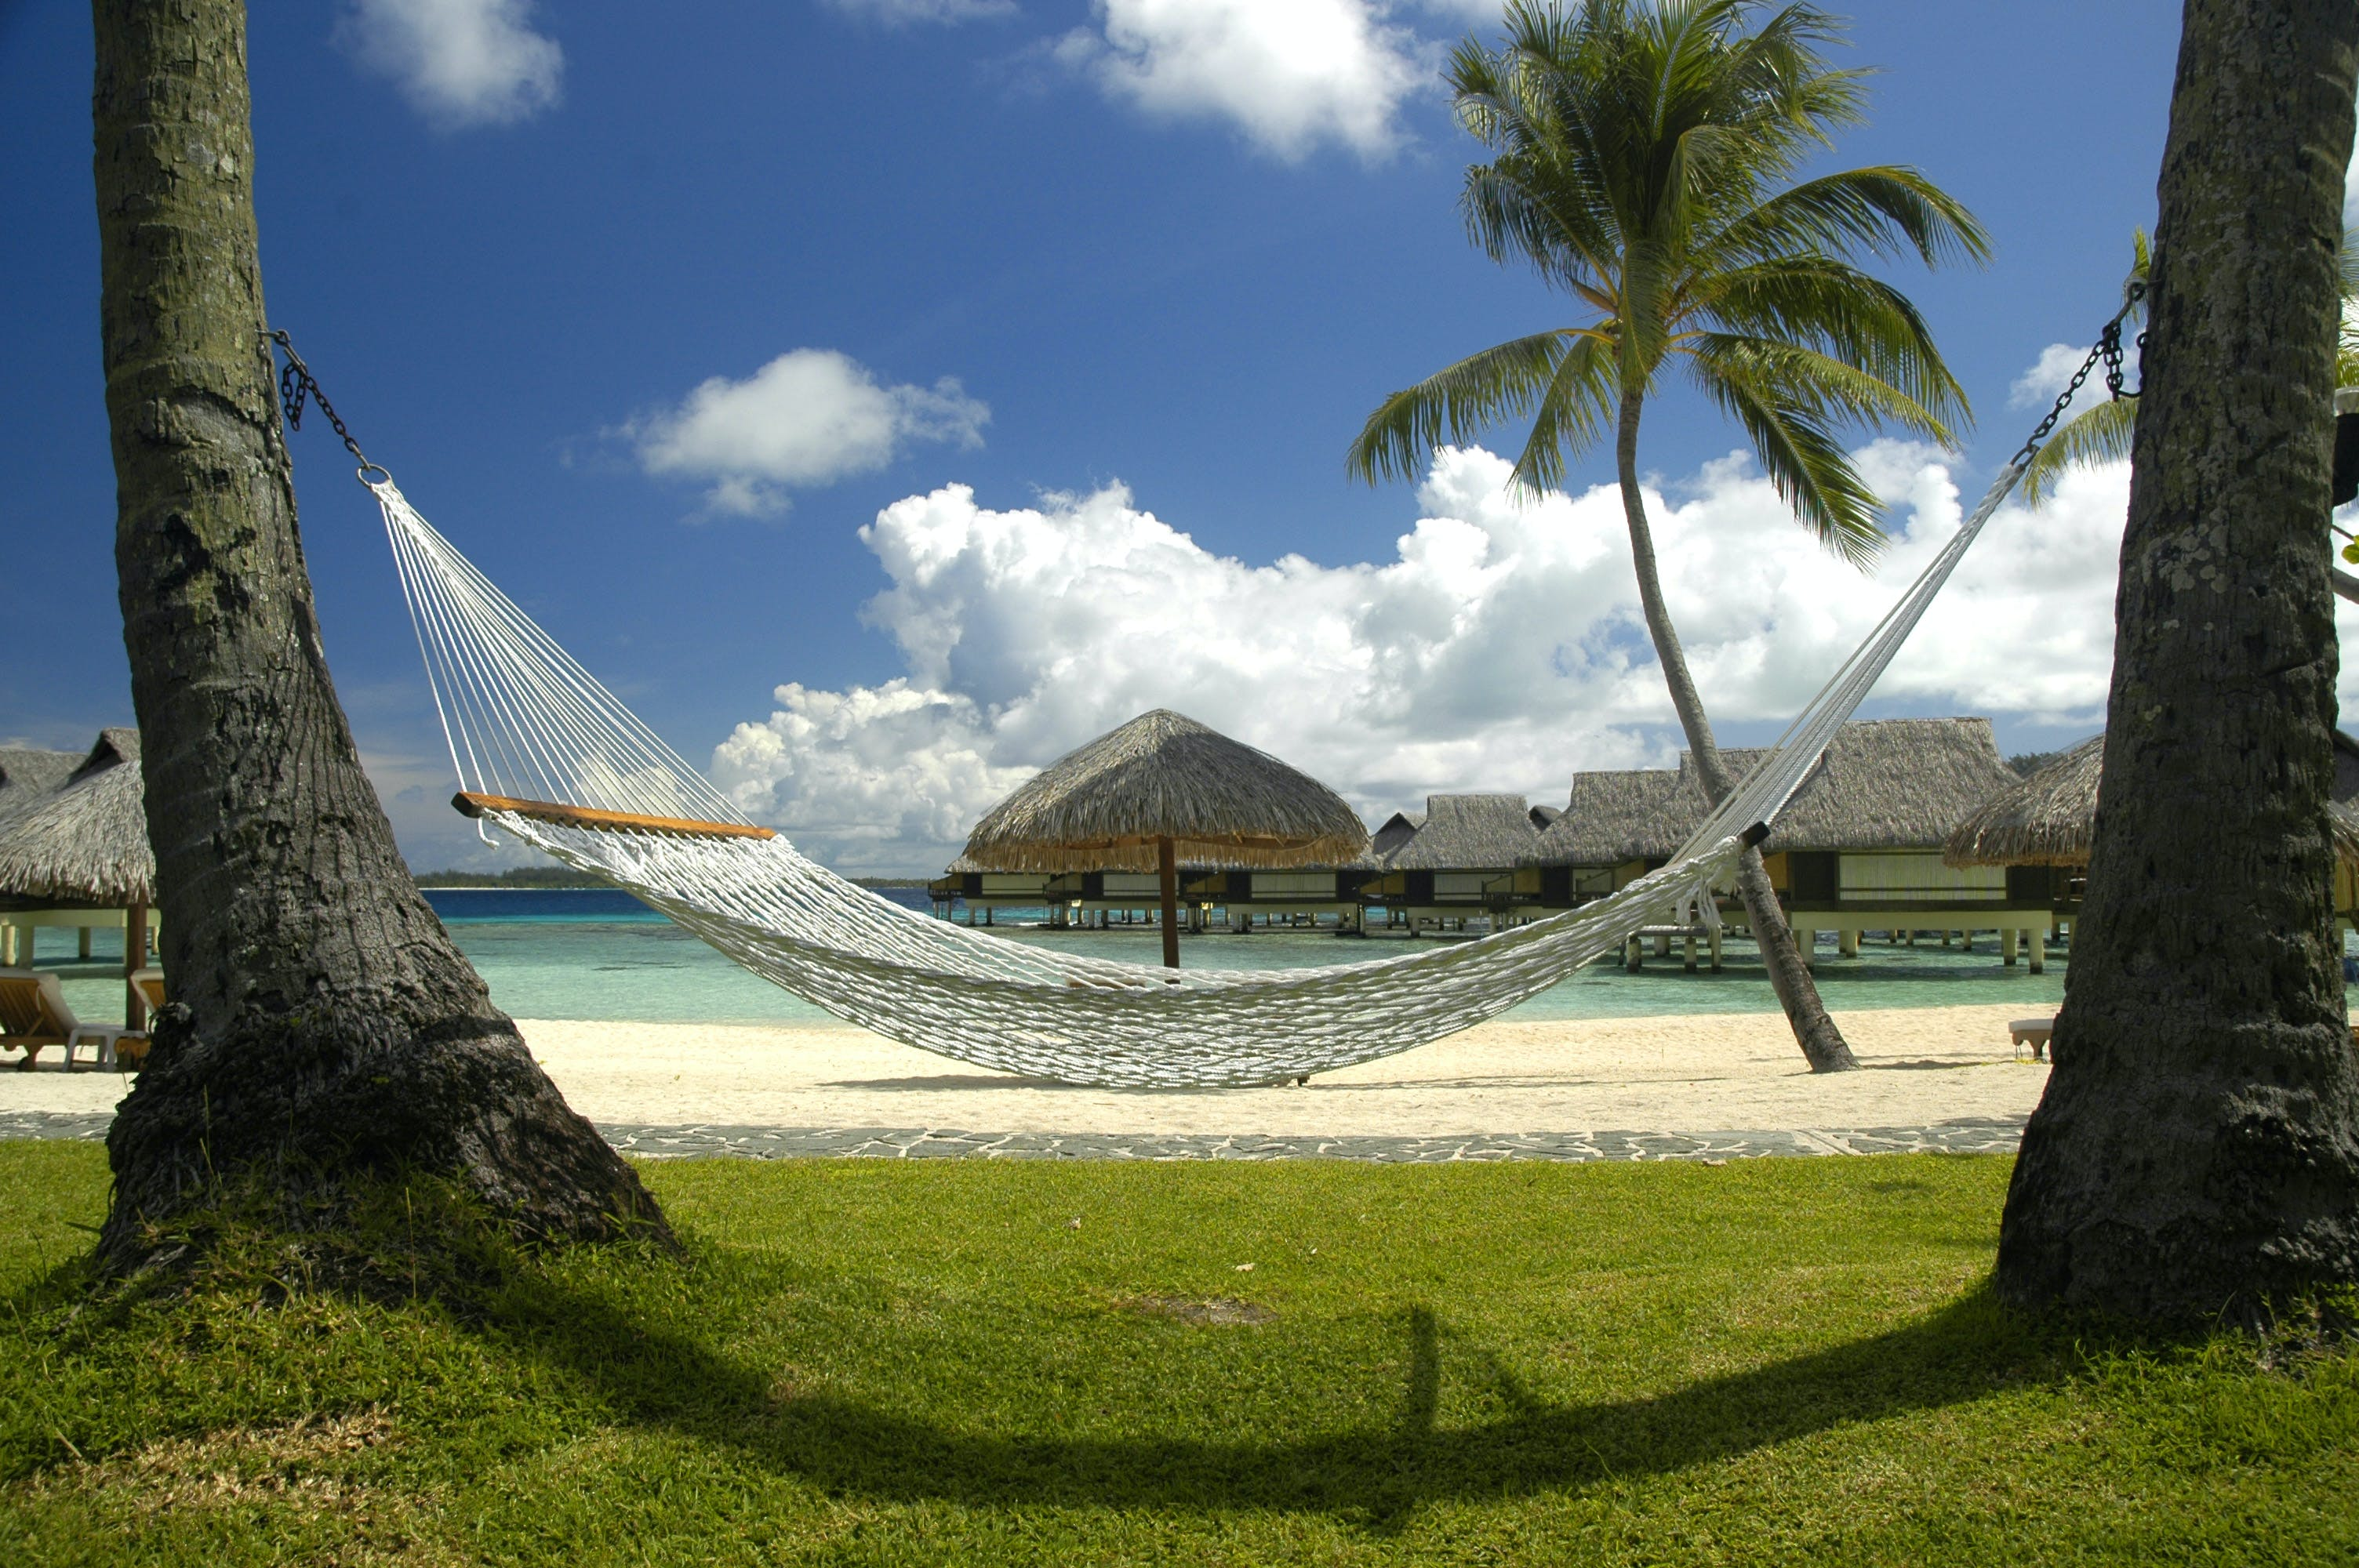 White Hammock on the Beach